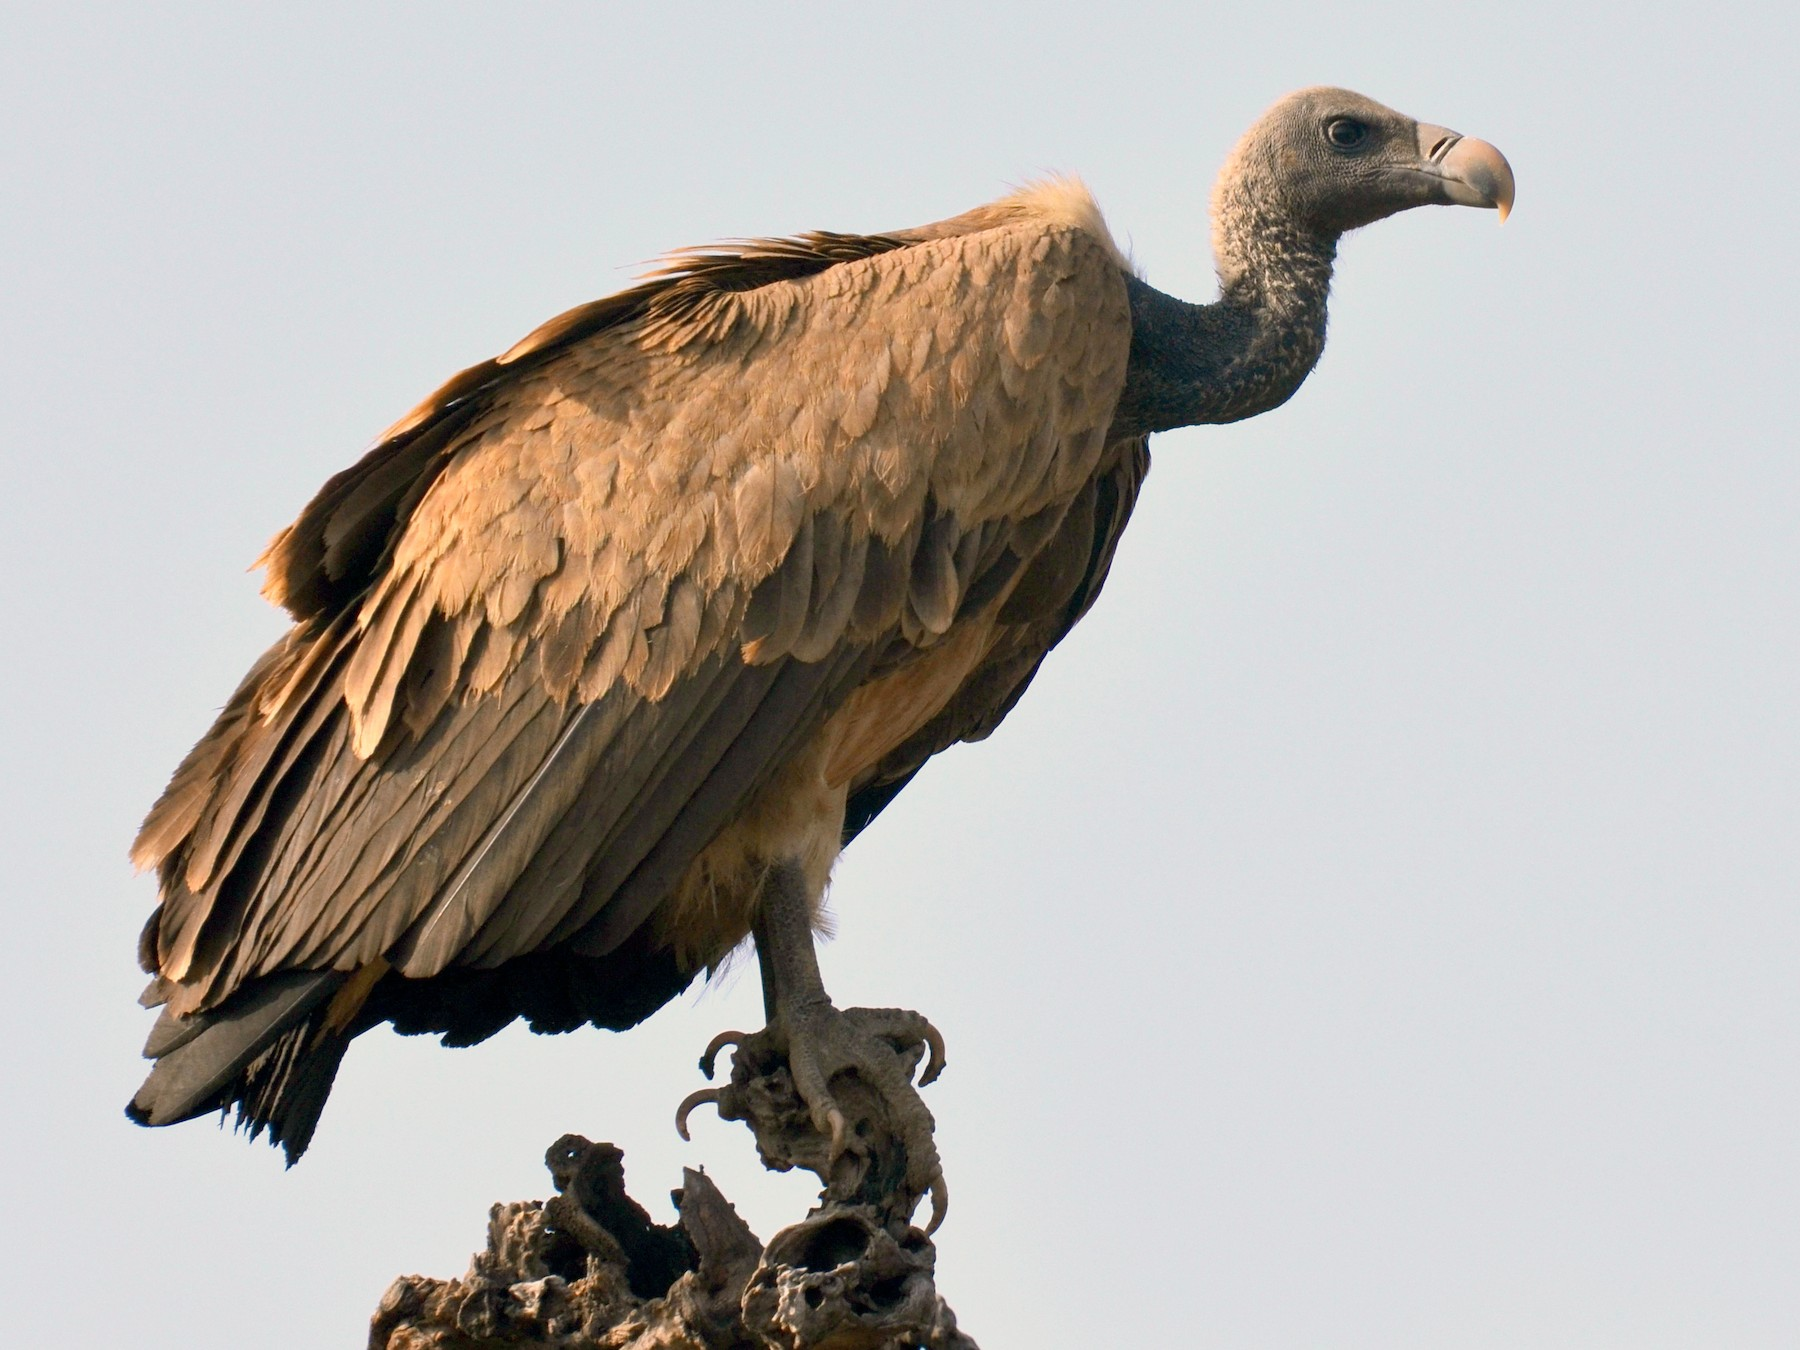 Indian Vulture - Hakimuddin F Saify